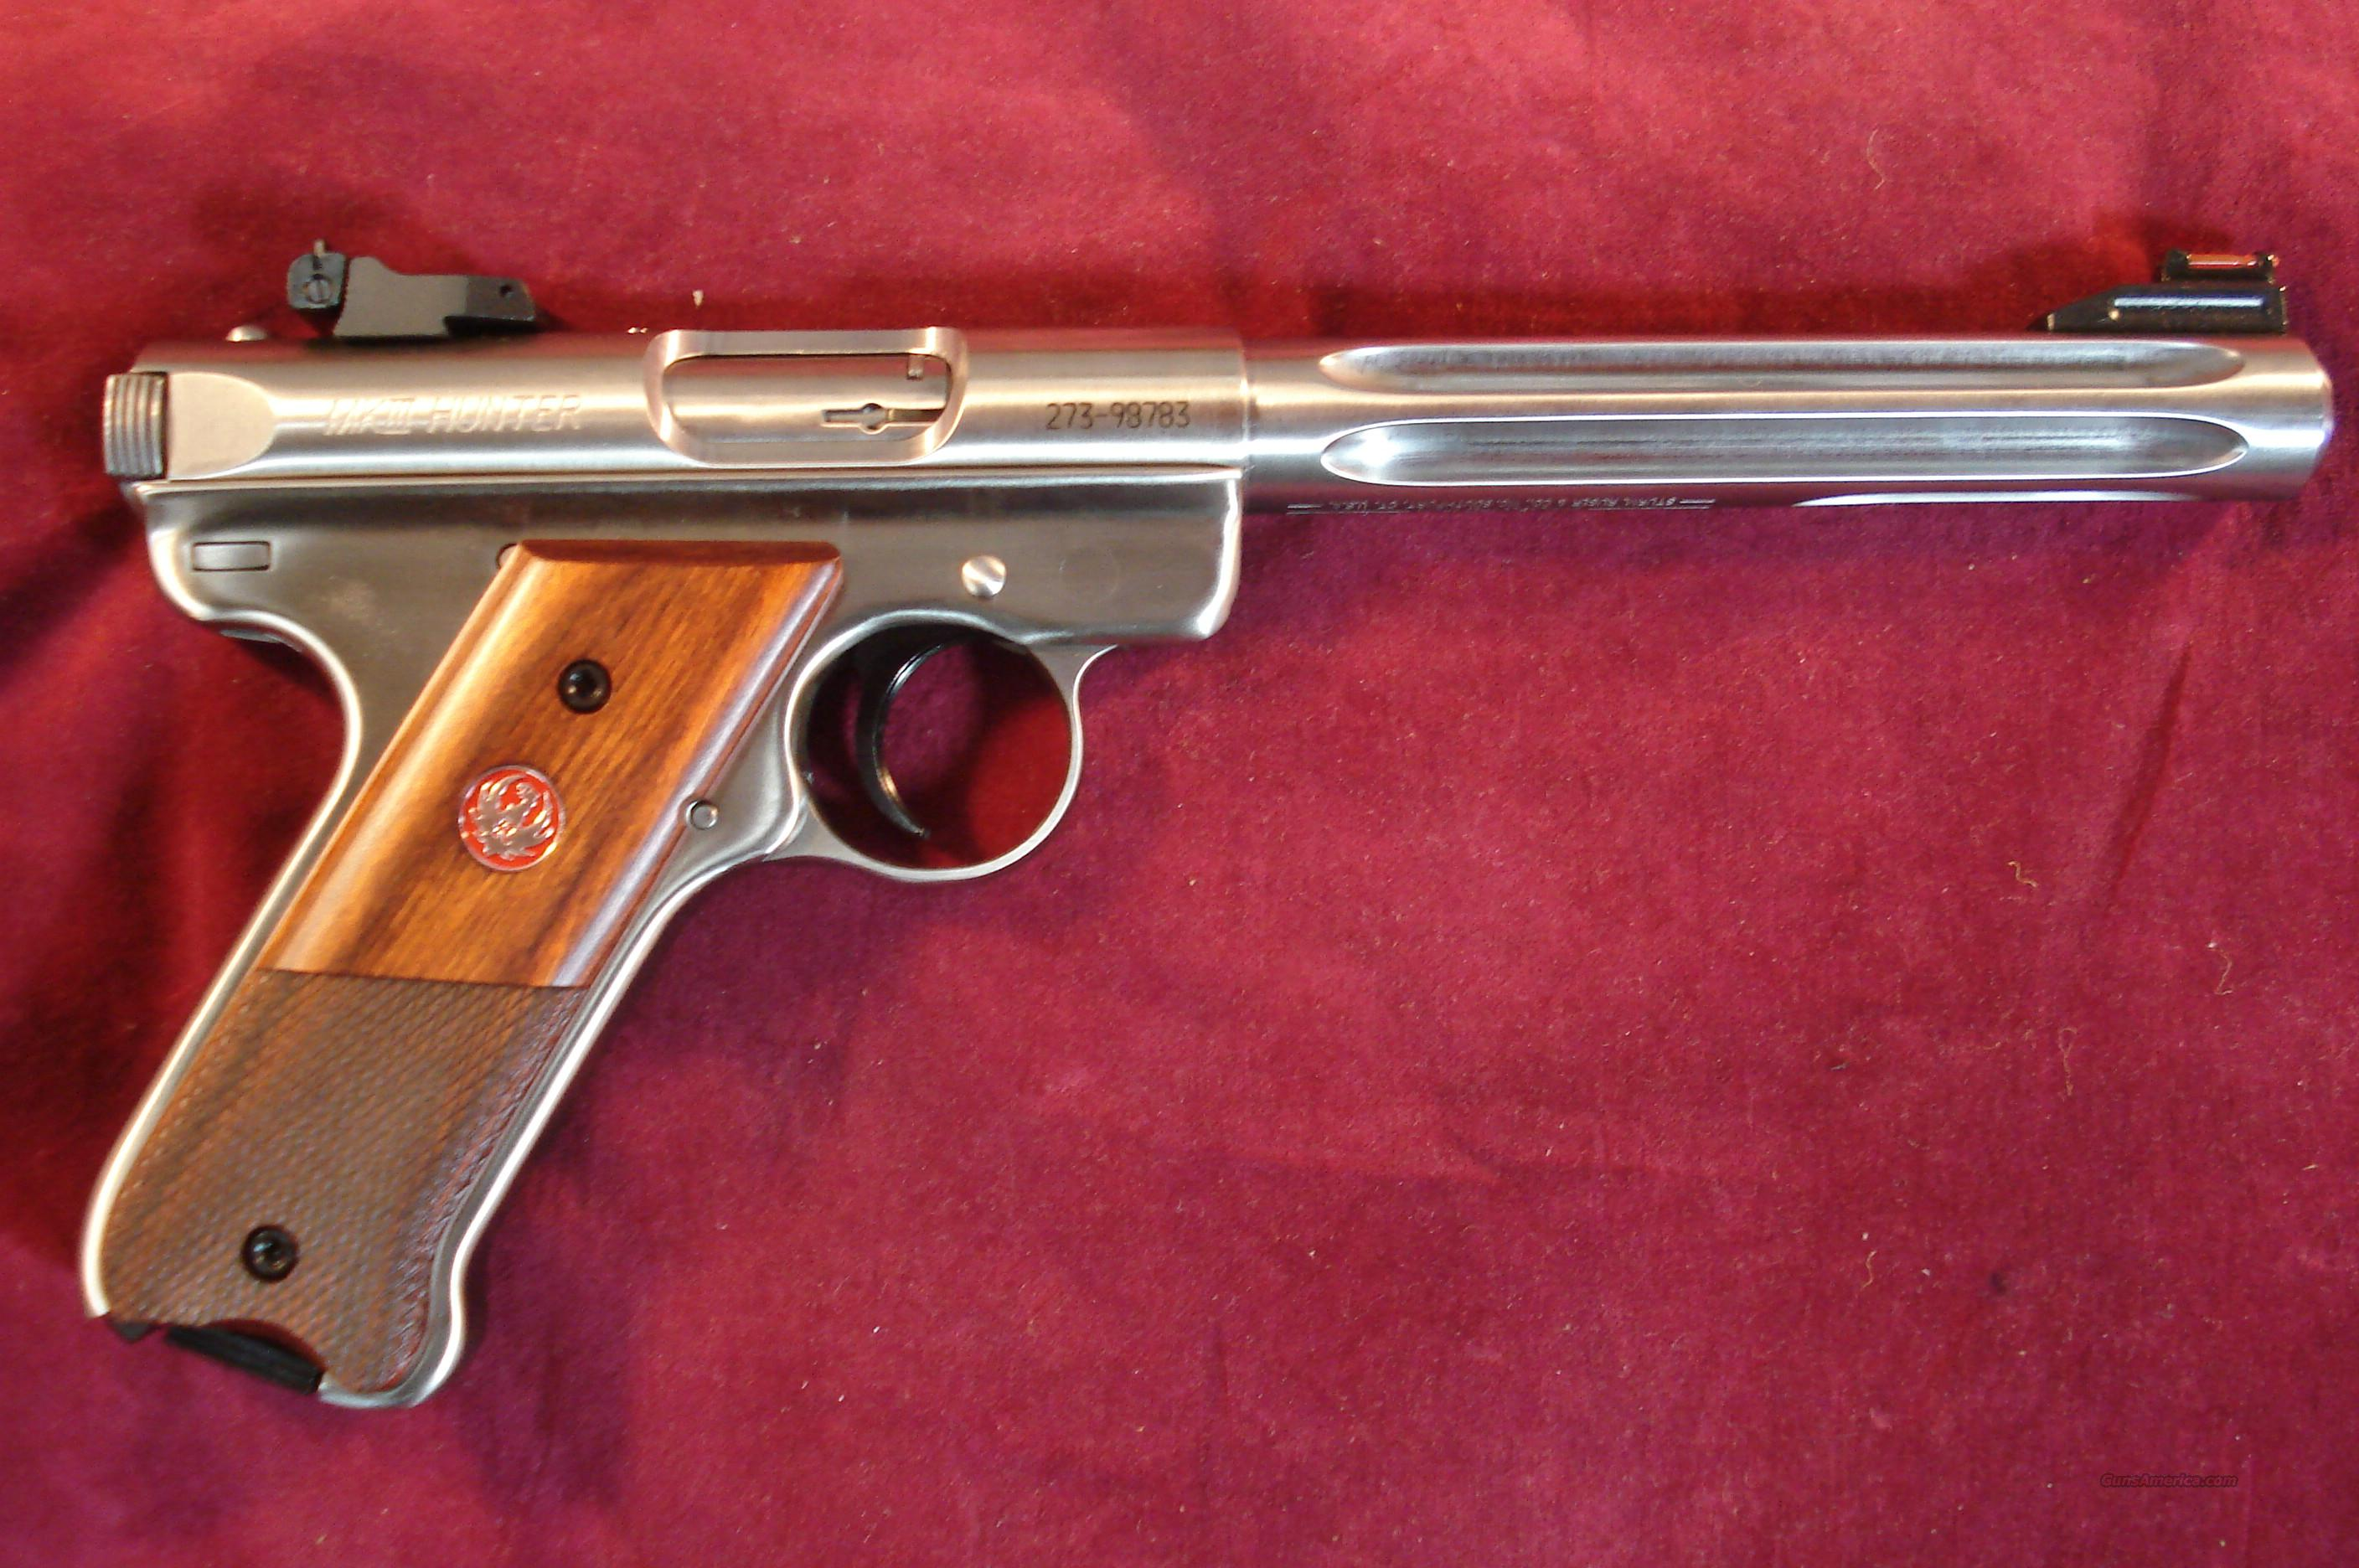 "RUGER MKIII HUNTER 6 7/8"" STAINLESS FLUTED 22CAL. NEW   Guns > Pistols > Ruger Semi-Auto Pistols > Mark I/II/III Family"